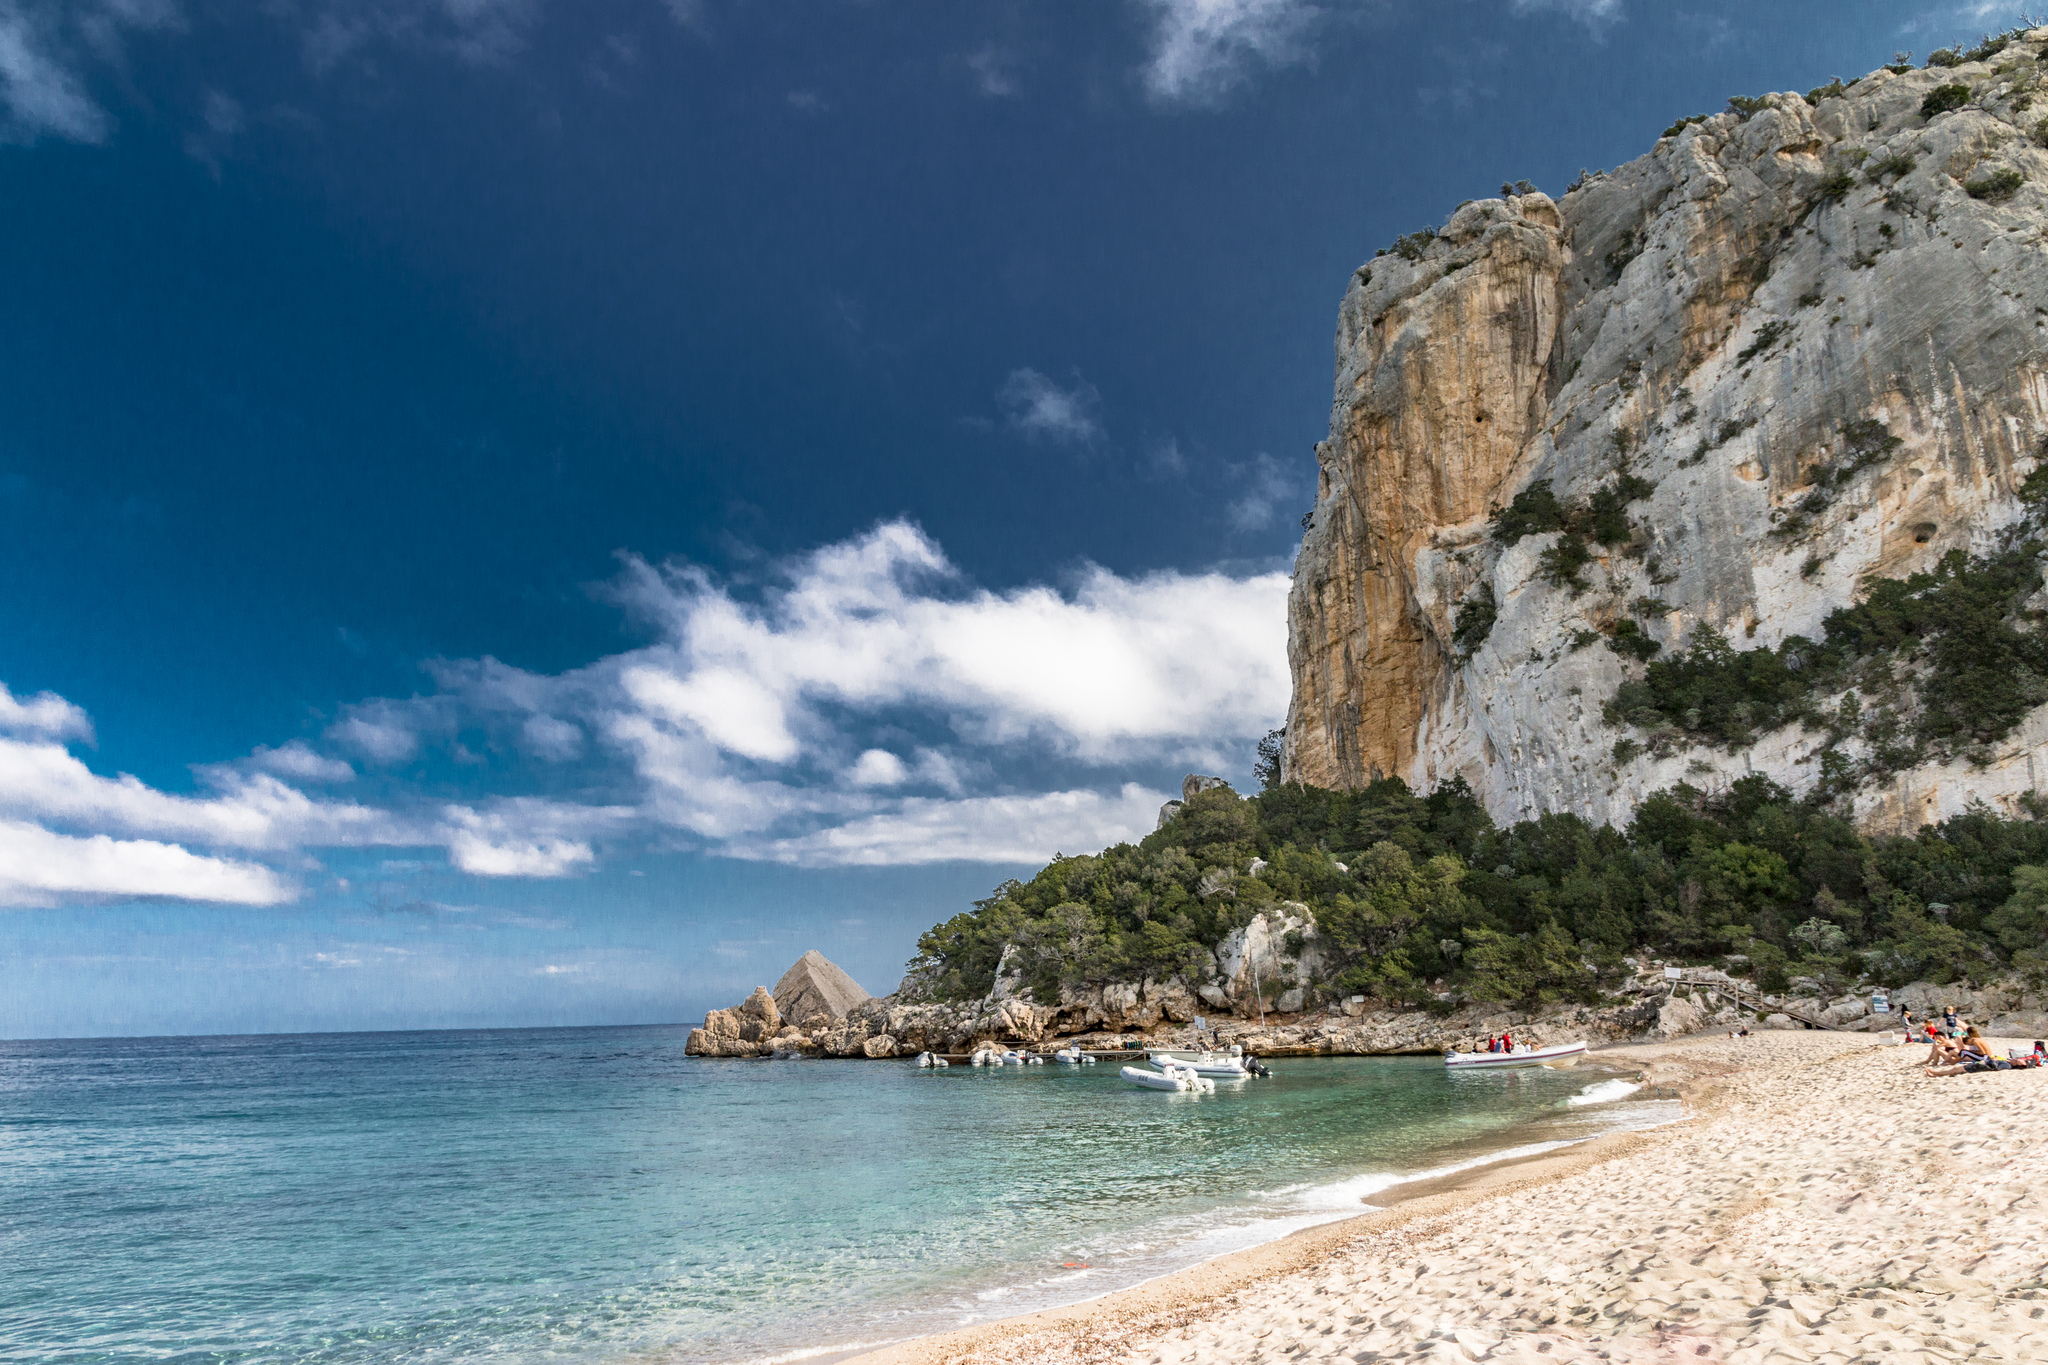 Cala Luna, a beach on a walk of Golfo di Orosei in Sardinia